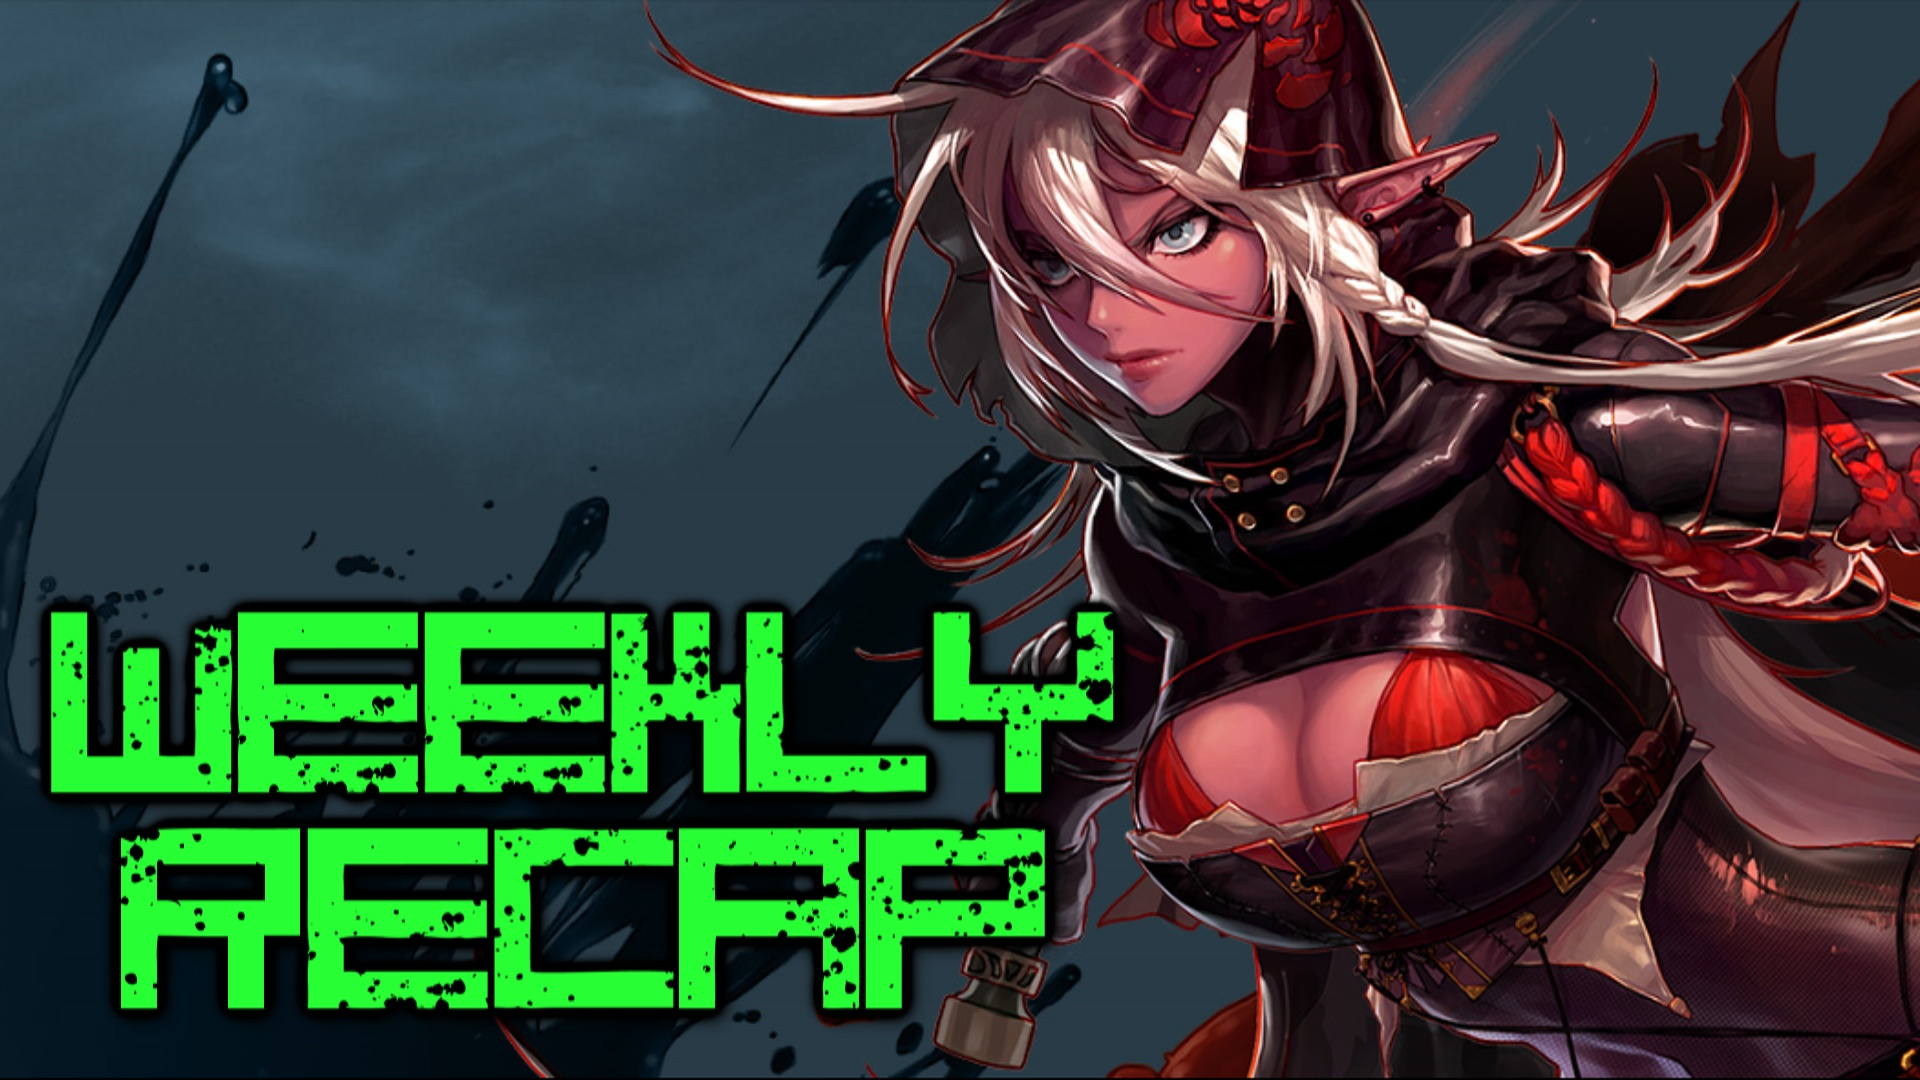 MMOHuts Weekly Recap #281 Mar. 14th - EverQuest Next, Paladins, DFO & More!